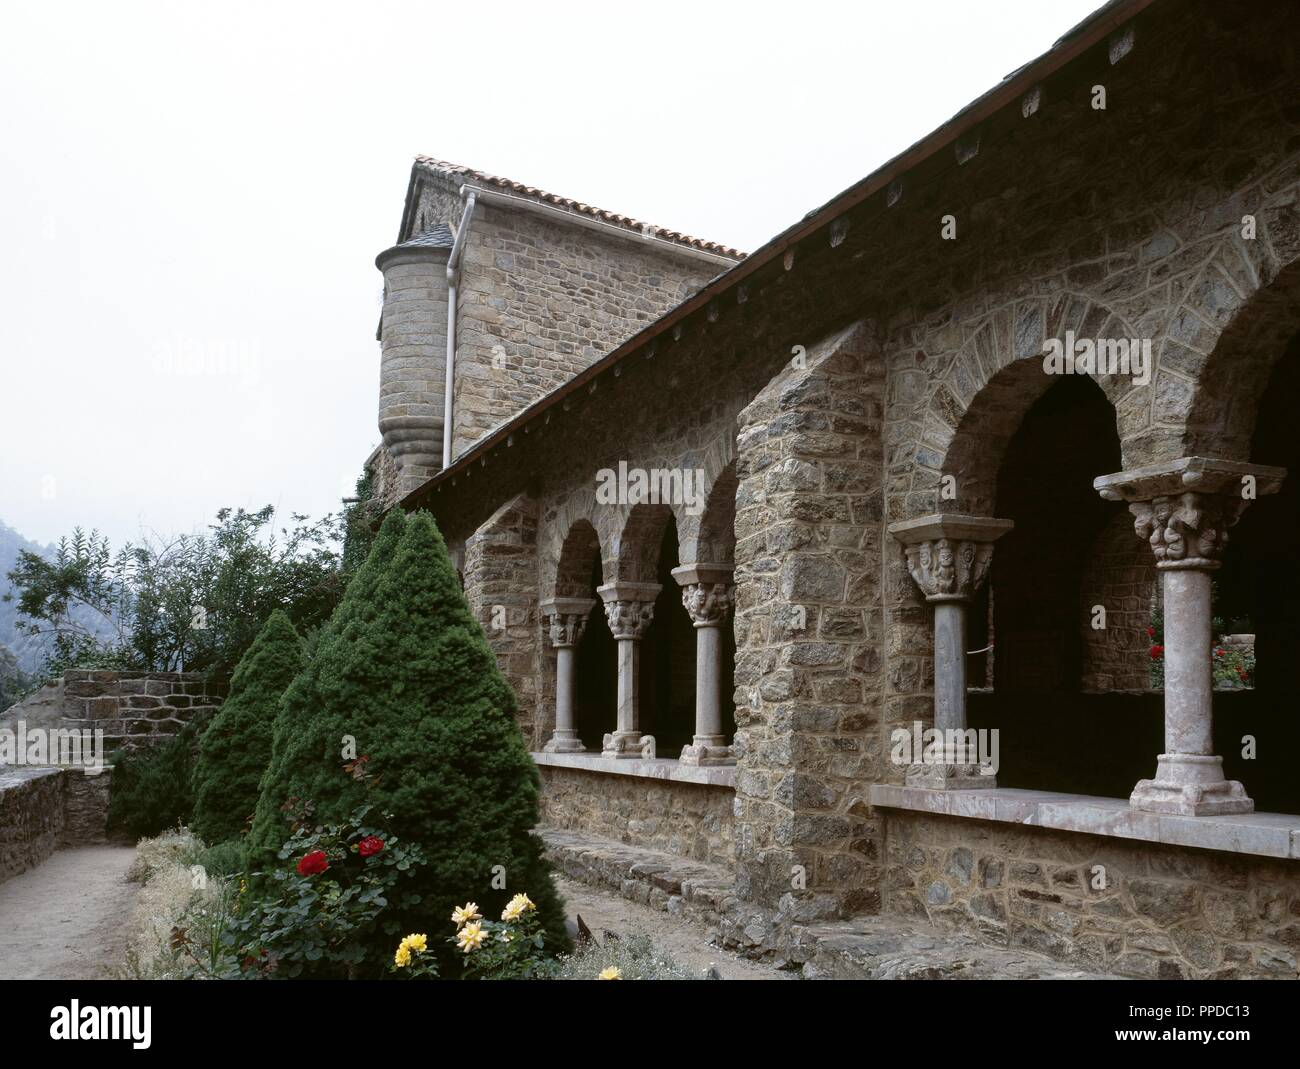 France. Pyrenees-Orientales. Languedoc-Roussillon region. Abbey of Saint-Martin-du-Canigou. Monastery built in 1009, on Canigou mountain. It was built from 1005-1009 by Guifred, Count of Cerdanya in Romanesque style. Architectural detail of the  Cloister. Restoration of 1900-1920. Stock Photo